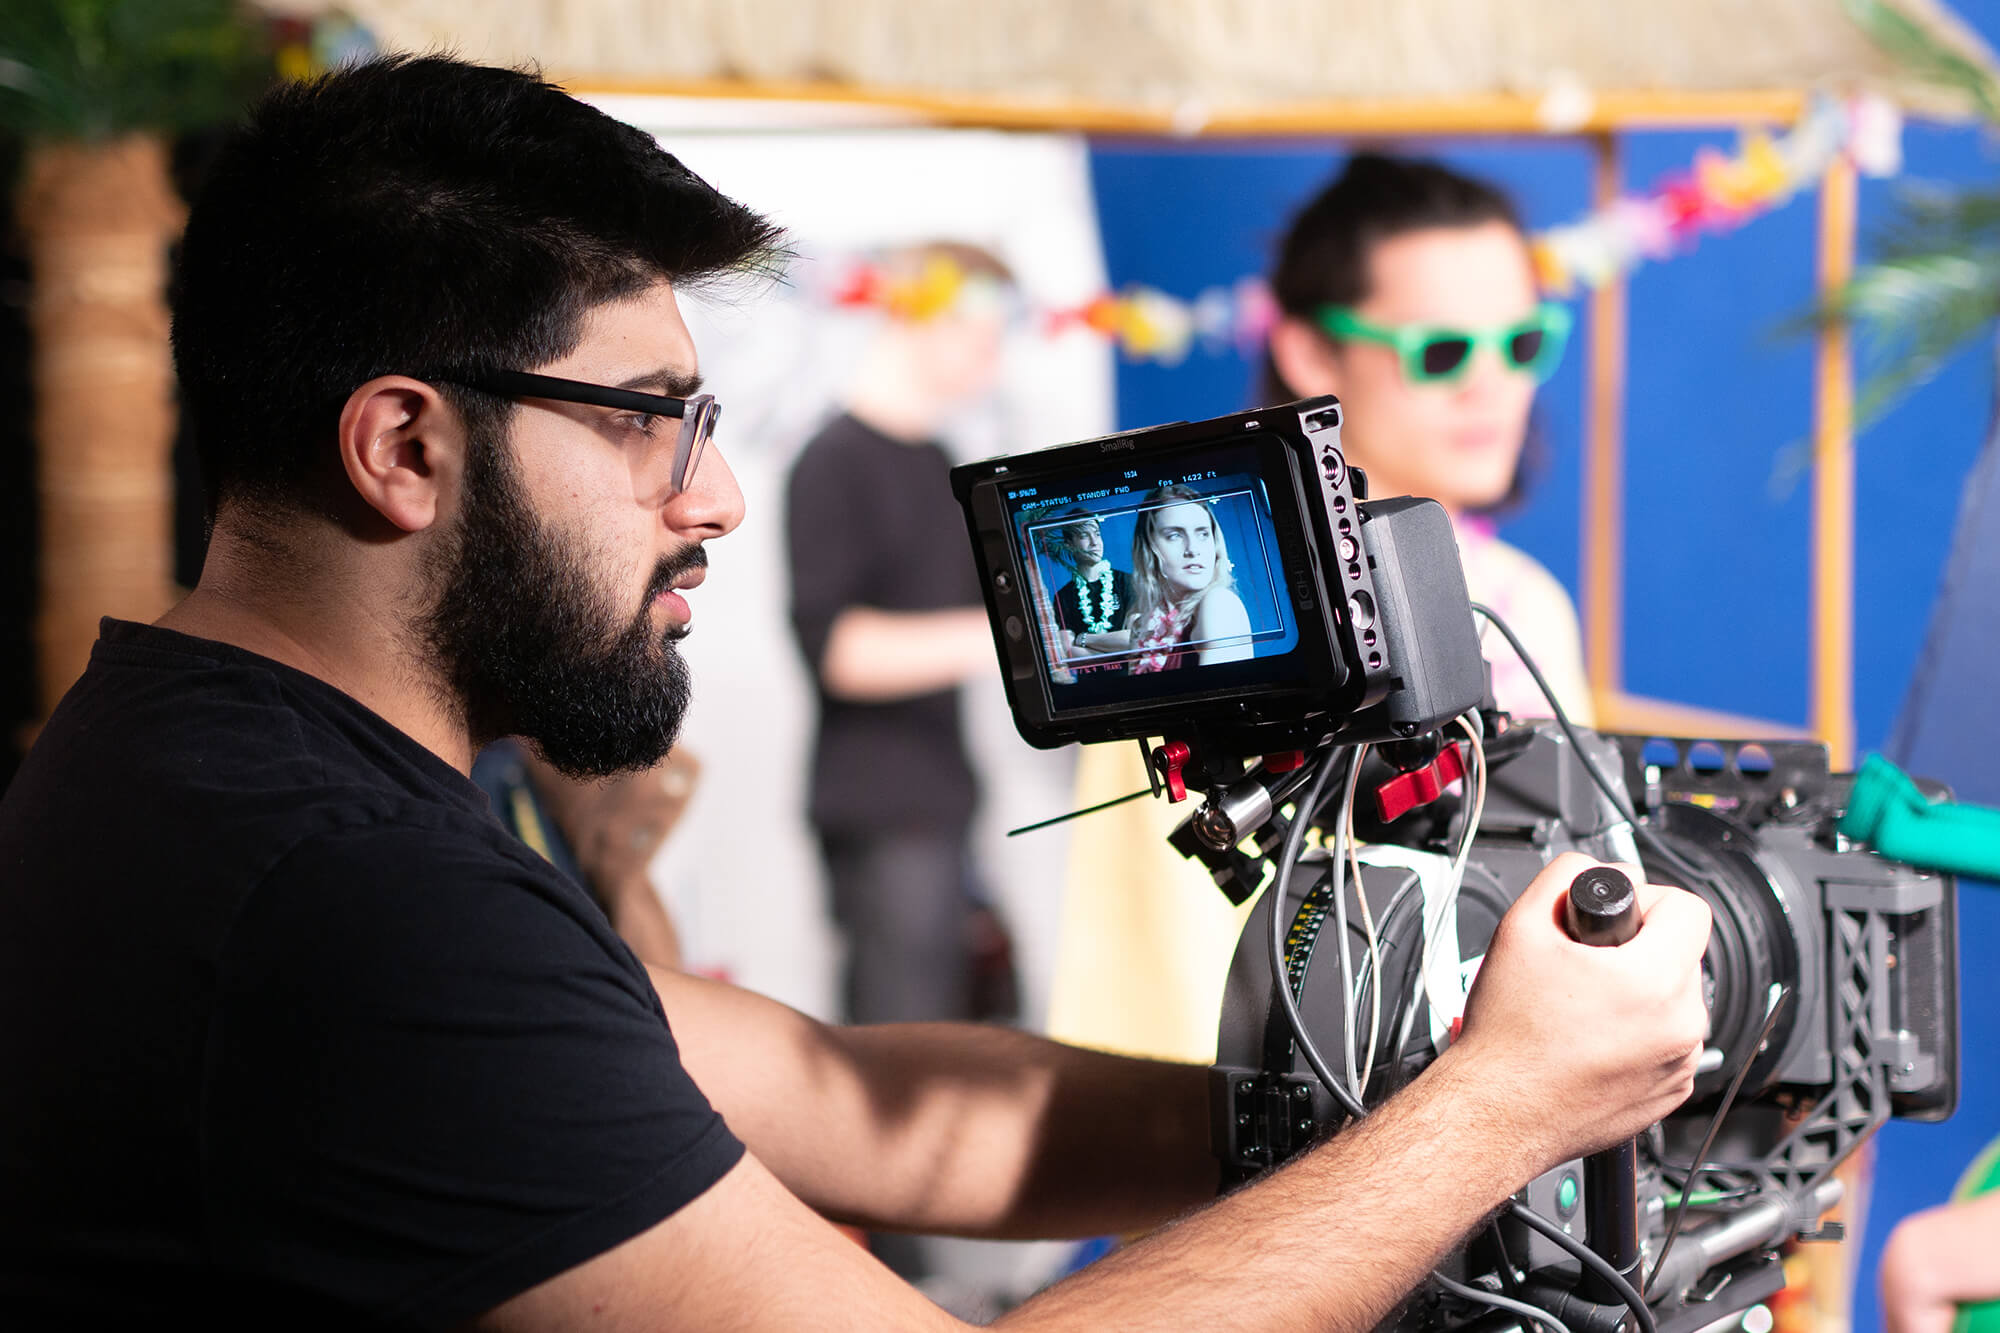 A male films and directs on a tropical commercial shoot